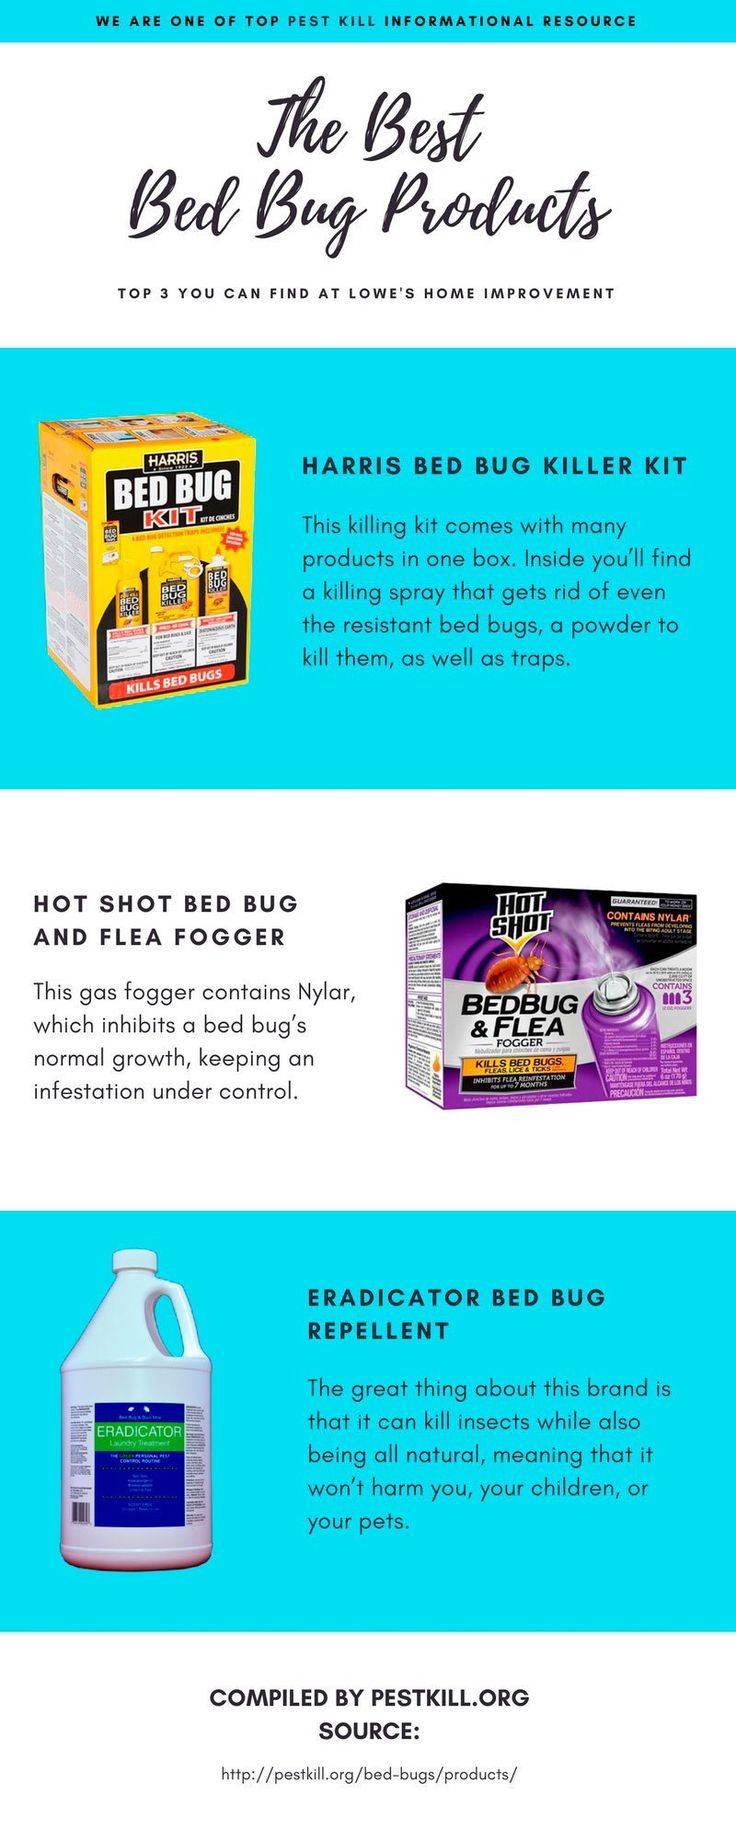 The Best Bed Bug Products for Your Infestation Bed bugs